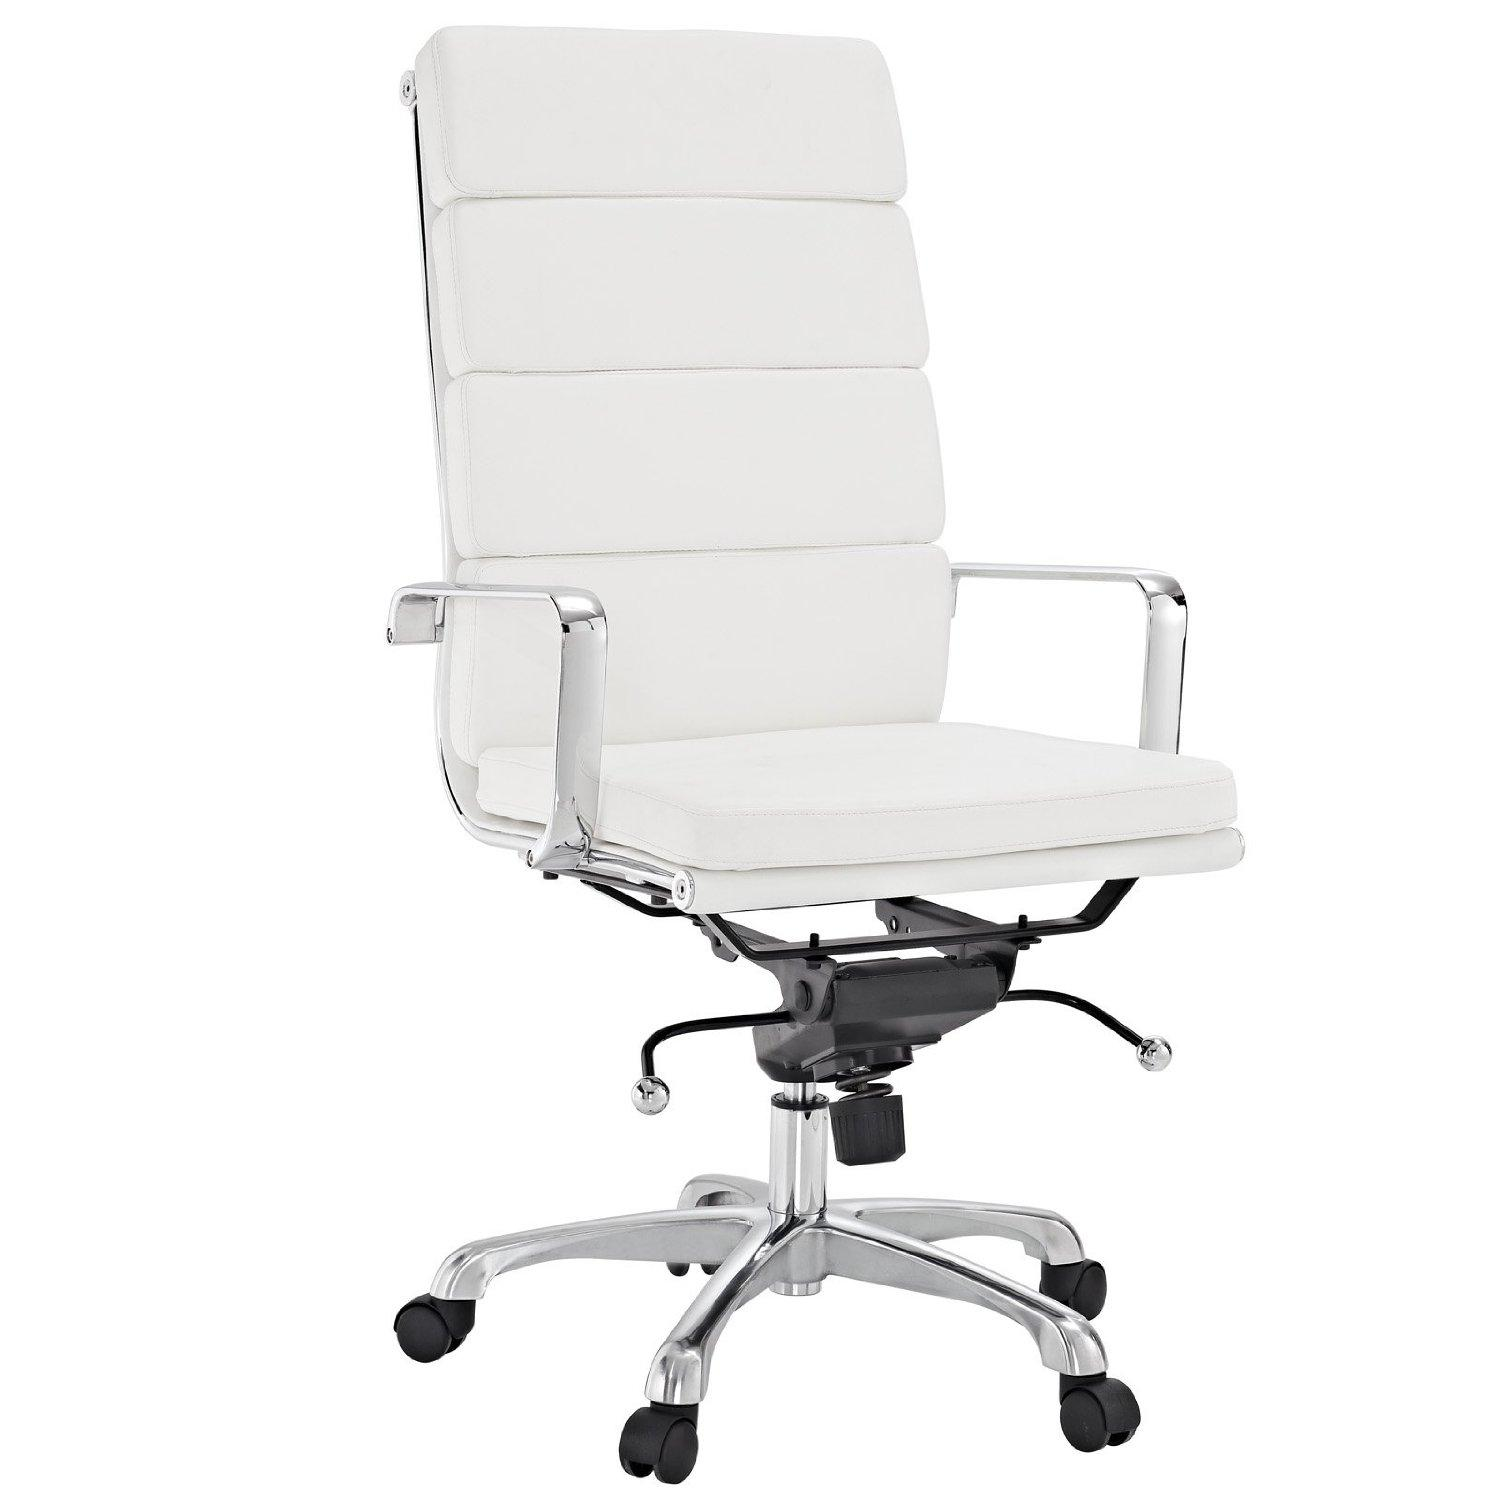 serta office chair 10 year warranty covers for hire randburg amazon lexmod discovery high back conference